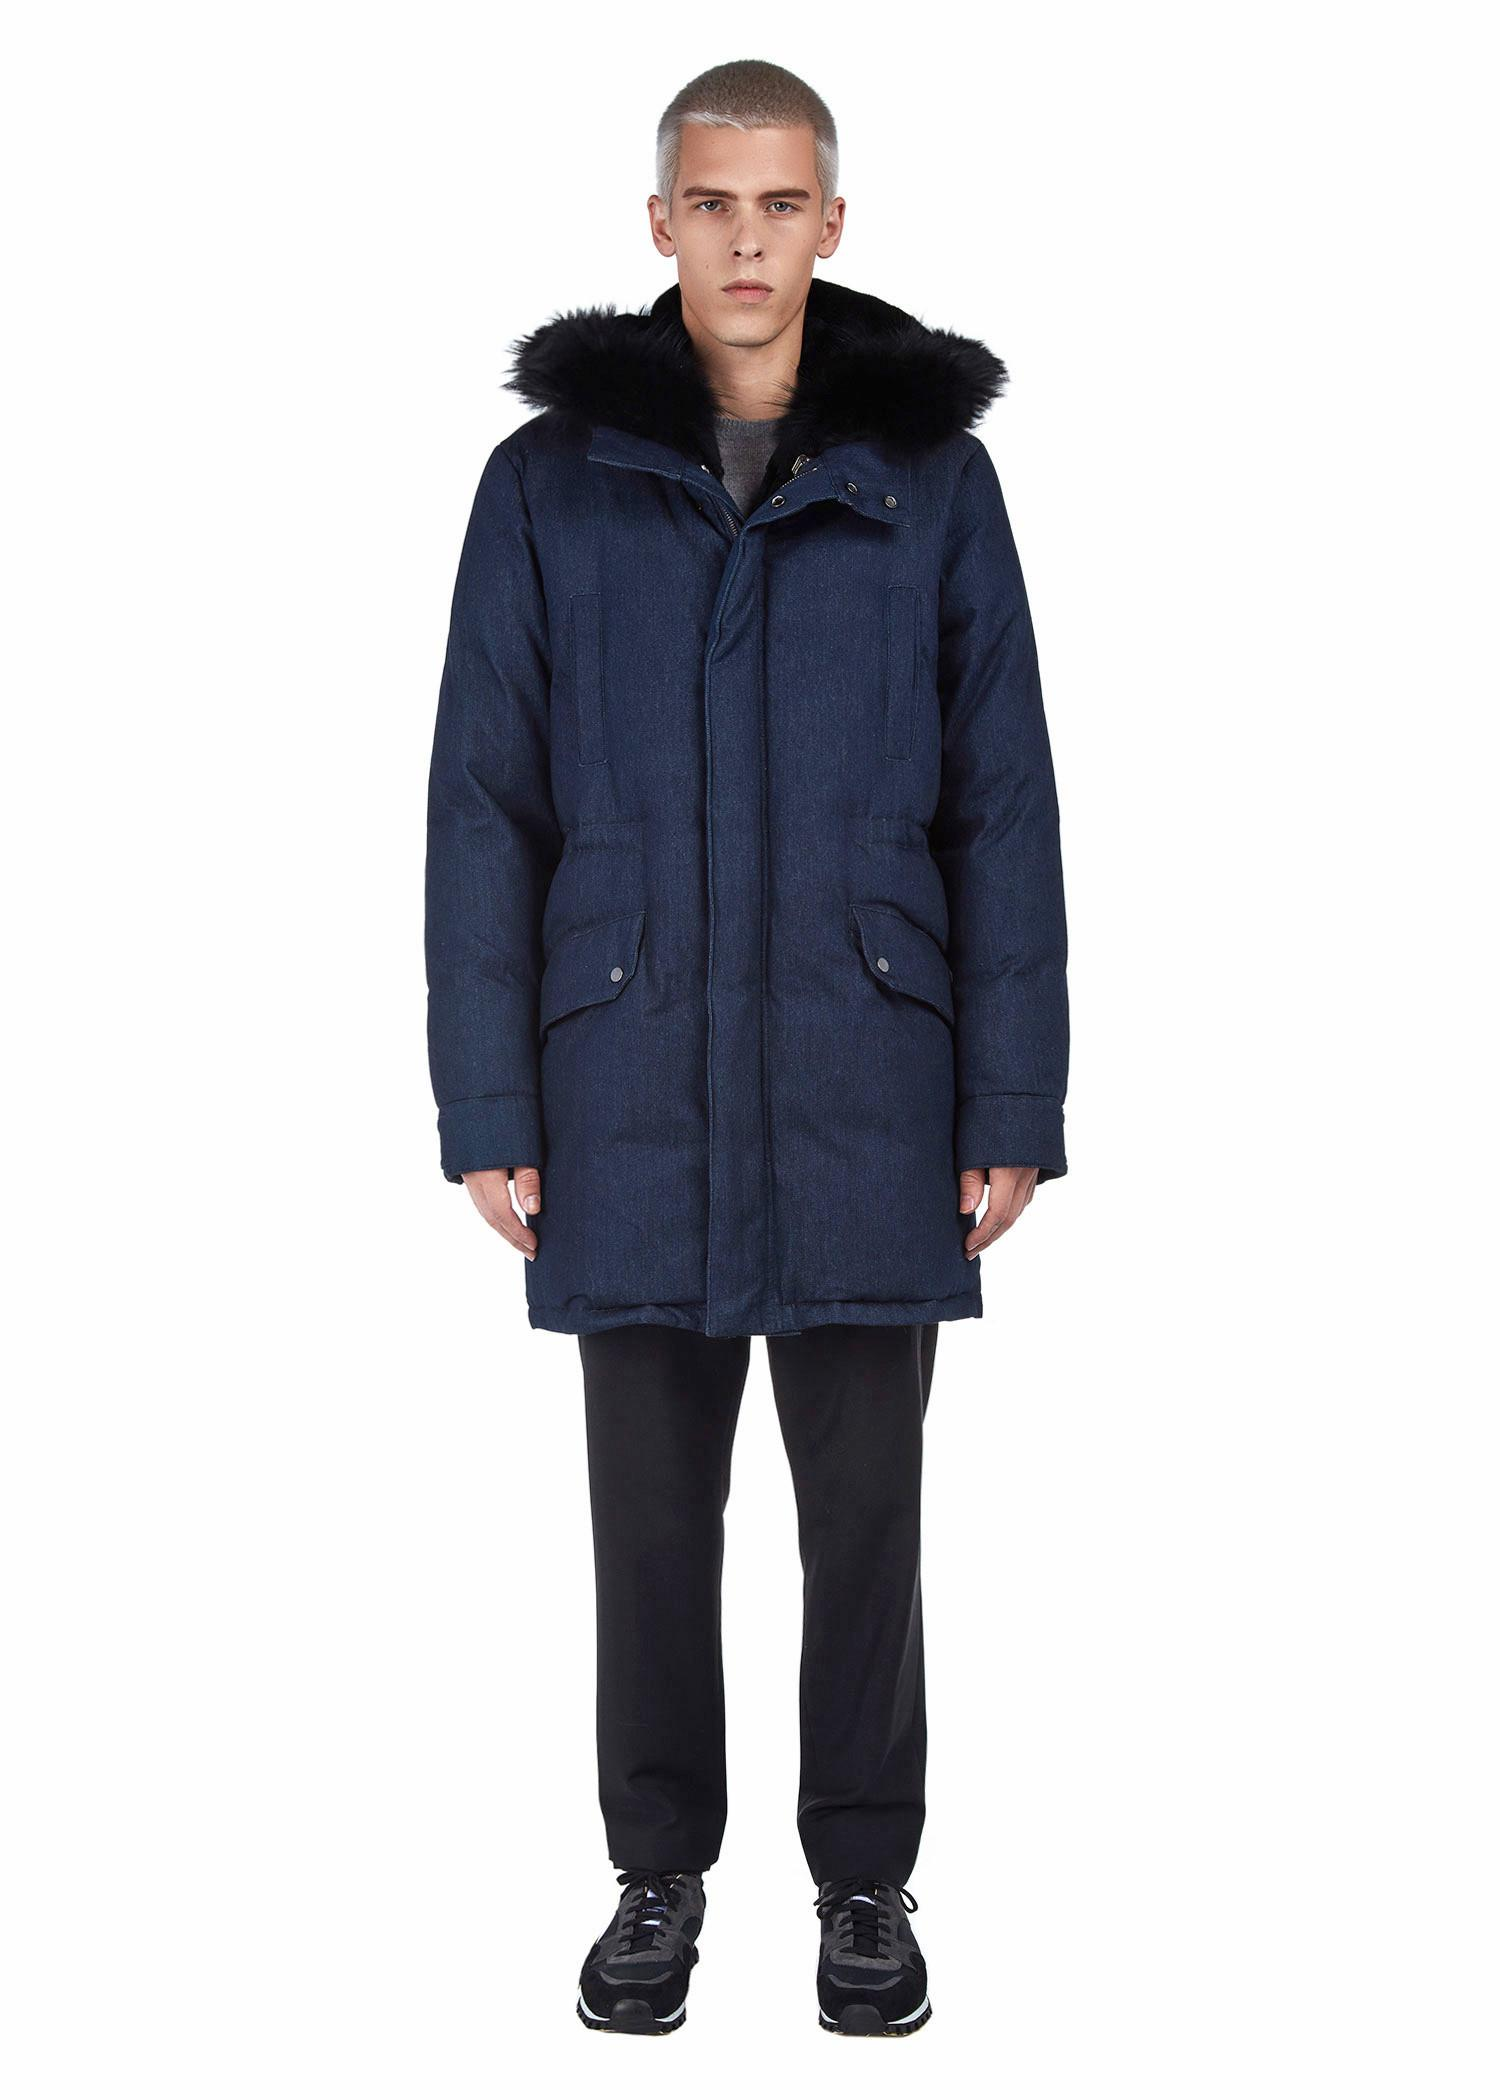 Yves Salomon Padded Denim Parka - Rabbit & Racoon Trim In A7040/Blue Denim